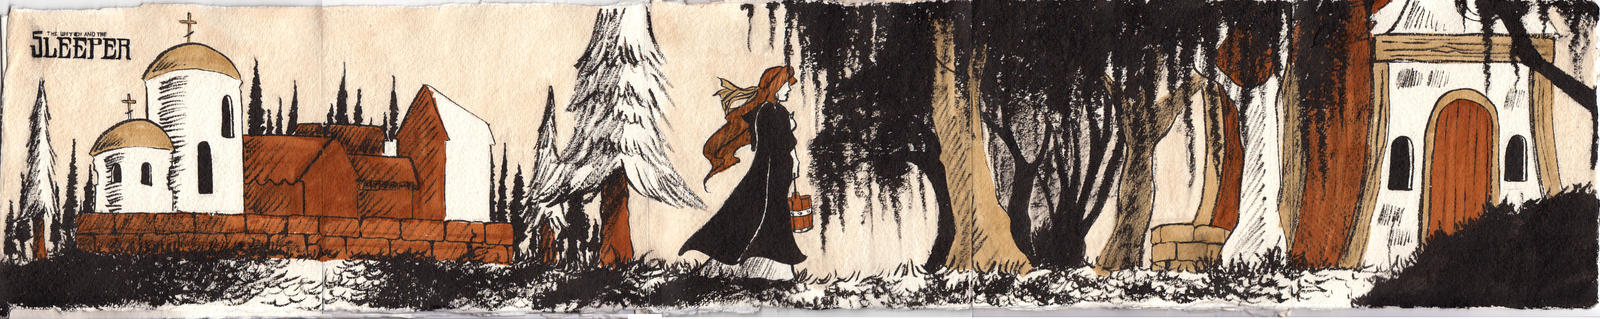 The Witch and the Sleeper - Accordian Illustration by sequentialnerd